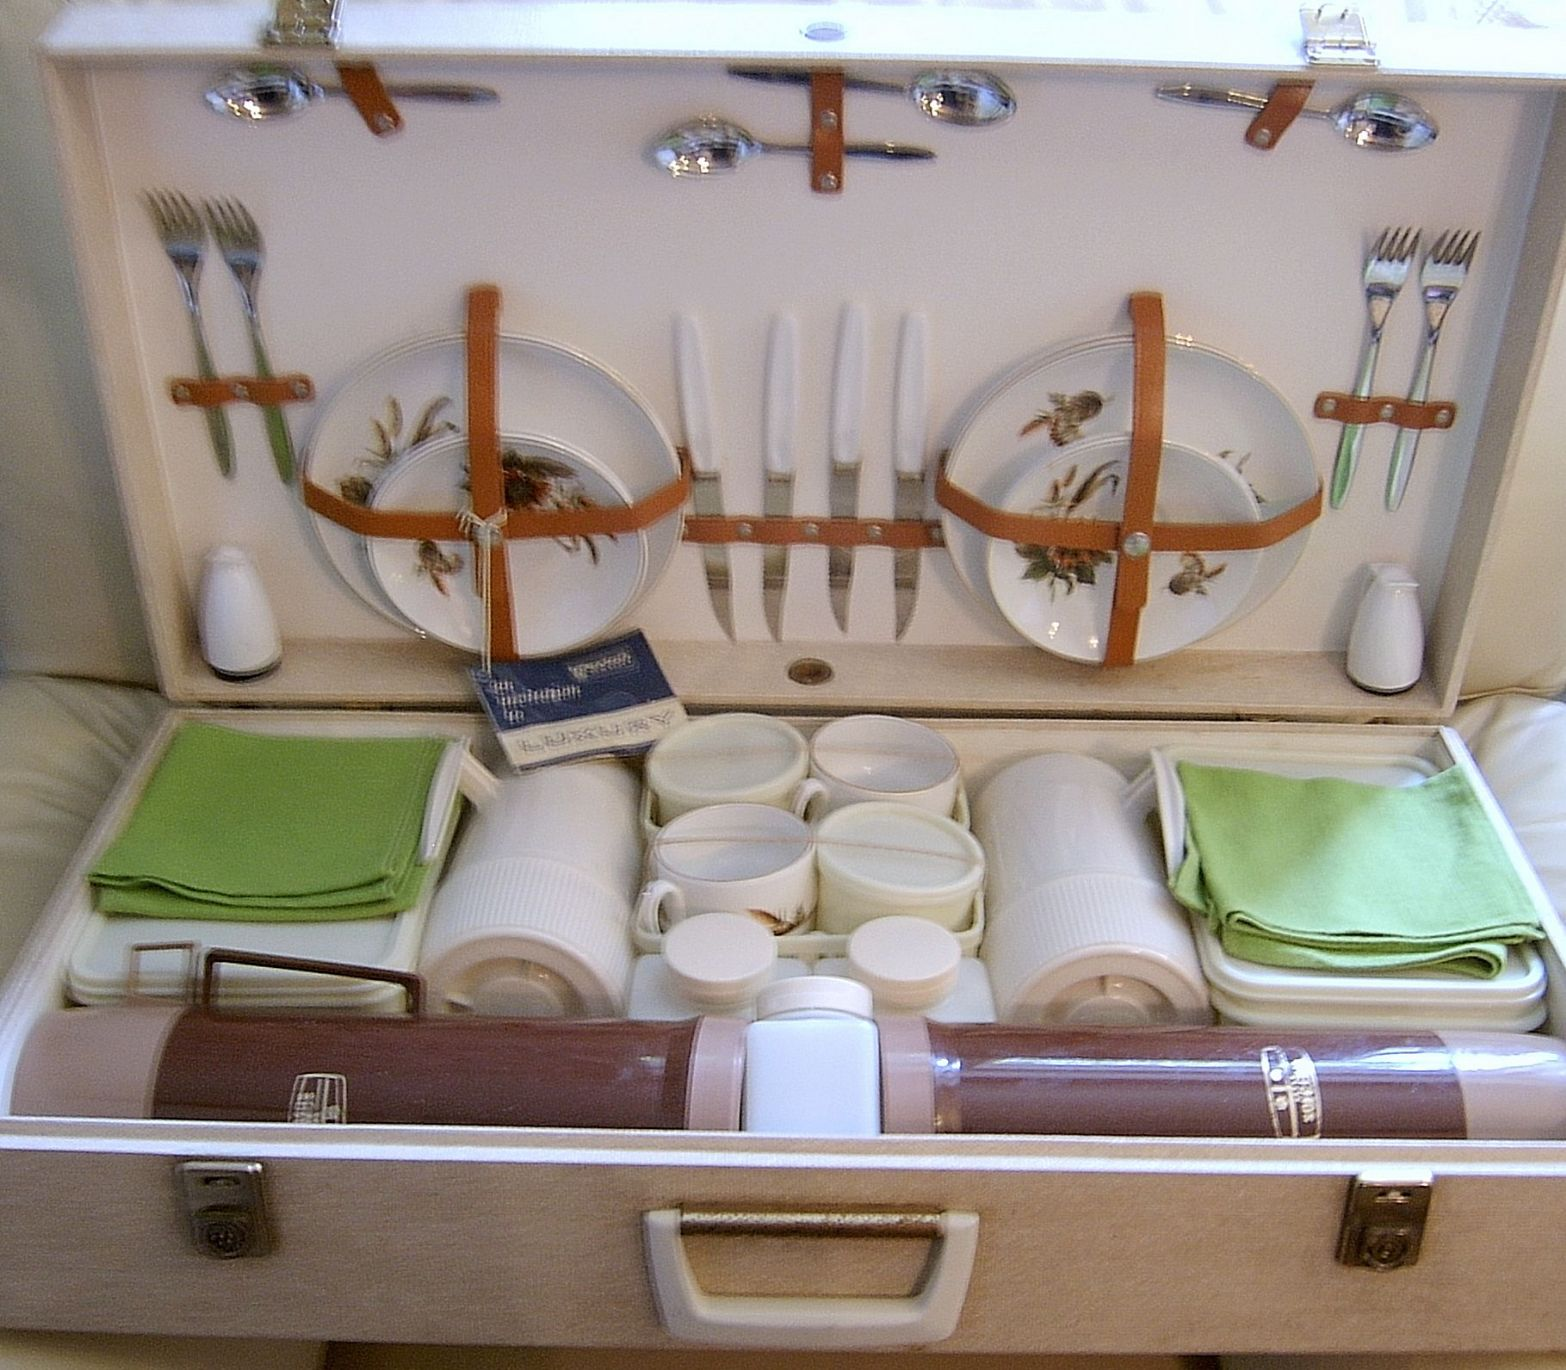 Brexton 4-Place Picnic Hamper - SOLD